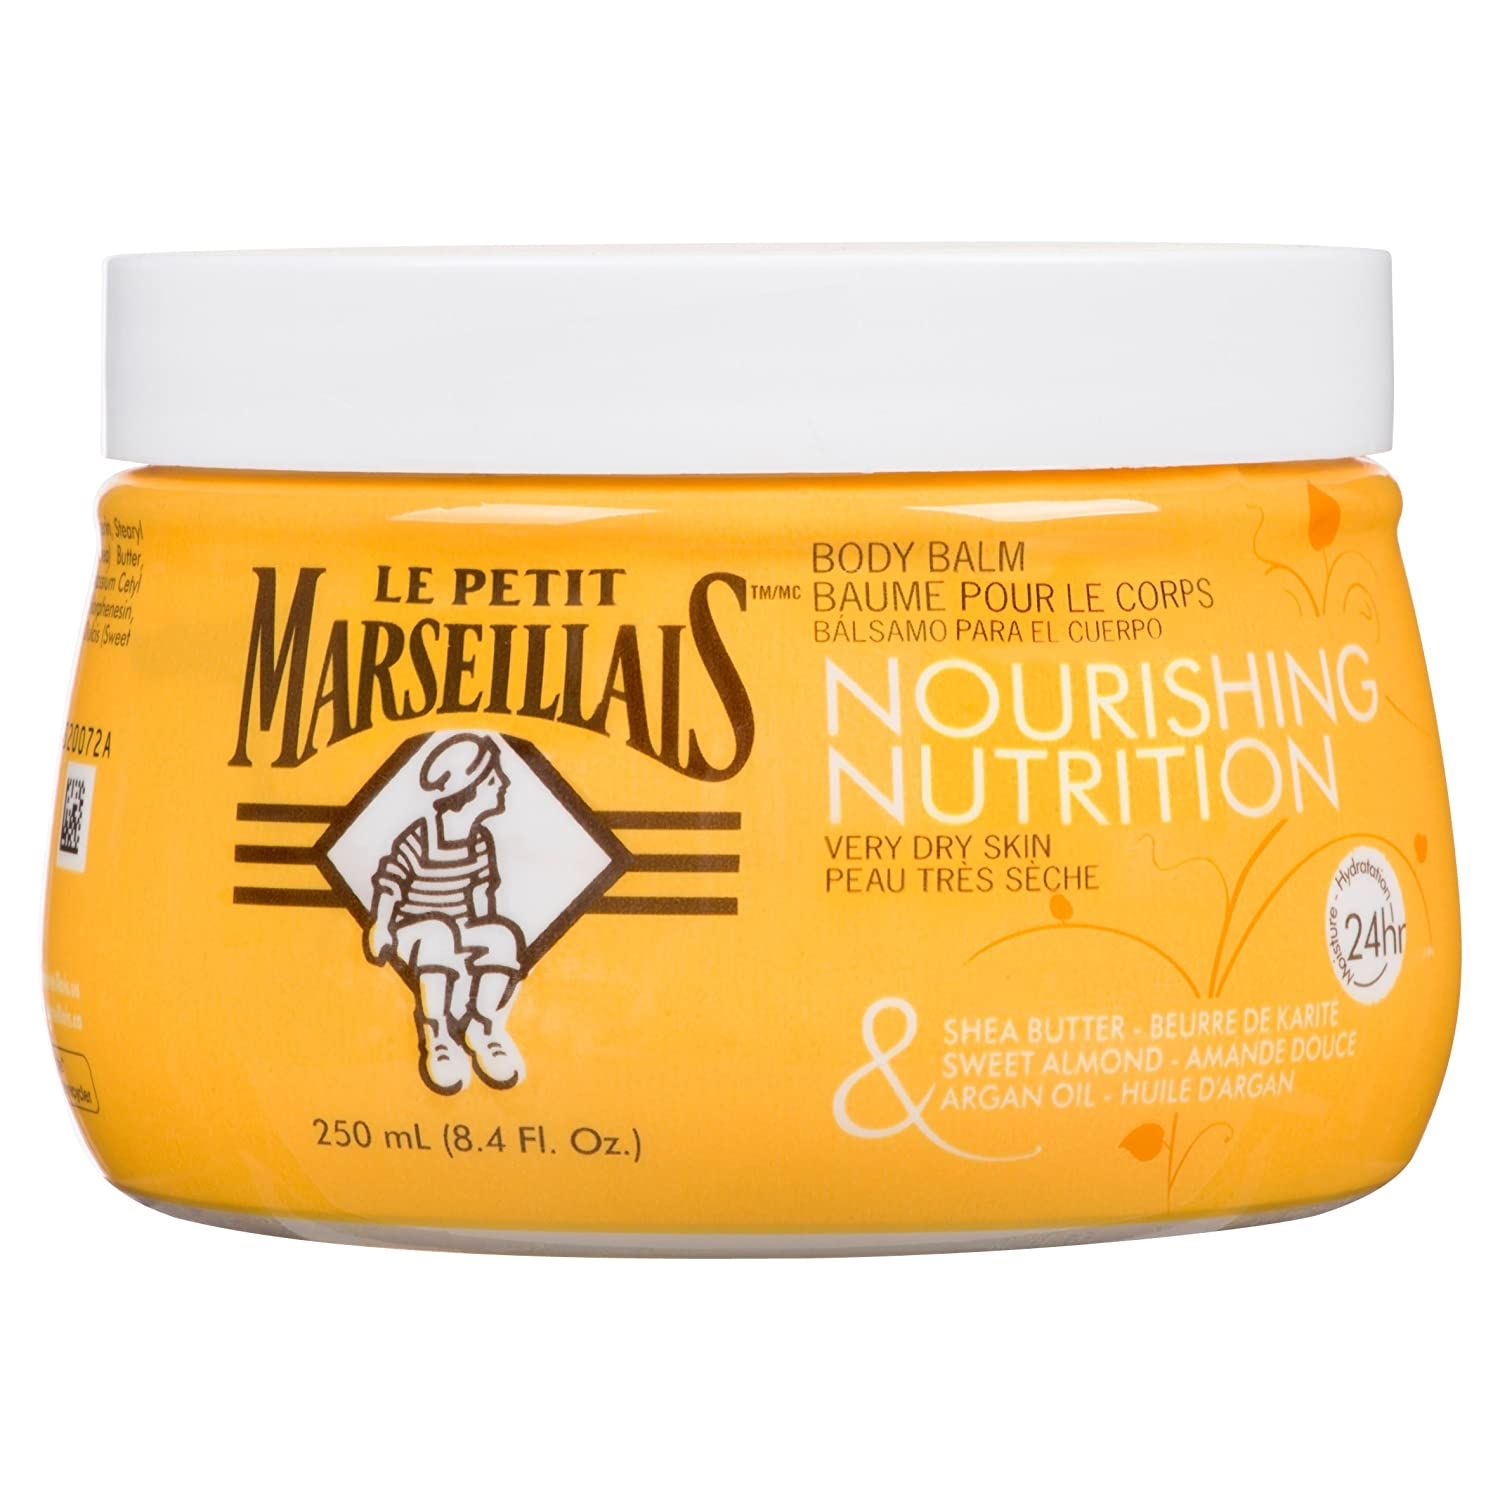 LE PETIT MARSEILLAIS Moisturizing Body Balm, Orange, Sweet Almond and Argan Oil, 250 ml Johnson & Johnson